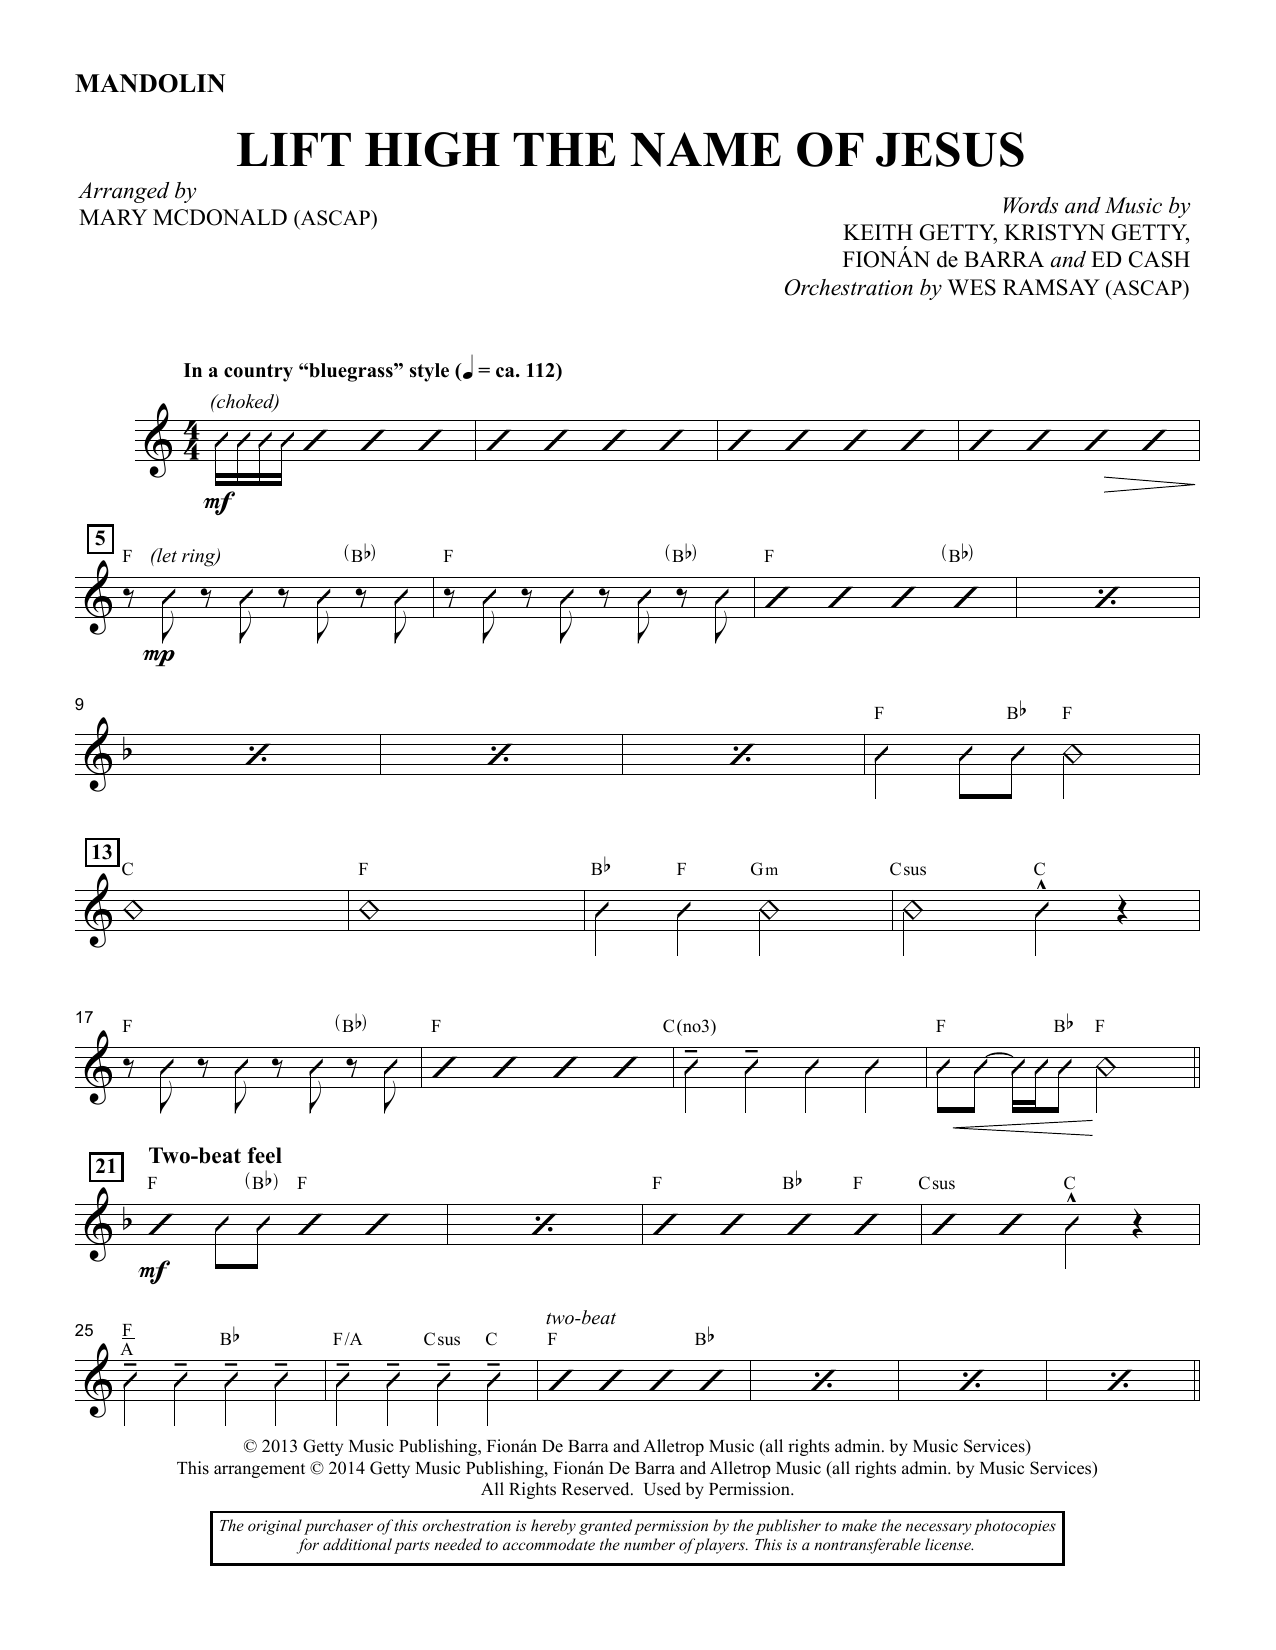 Lift High the Name of Jesus - Mandolin/Acoustic Guitar sheet music